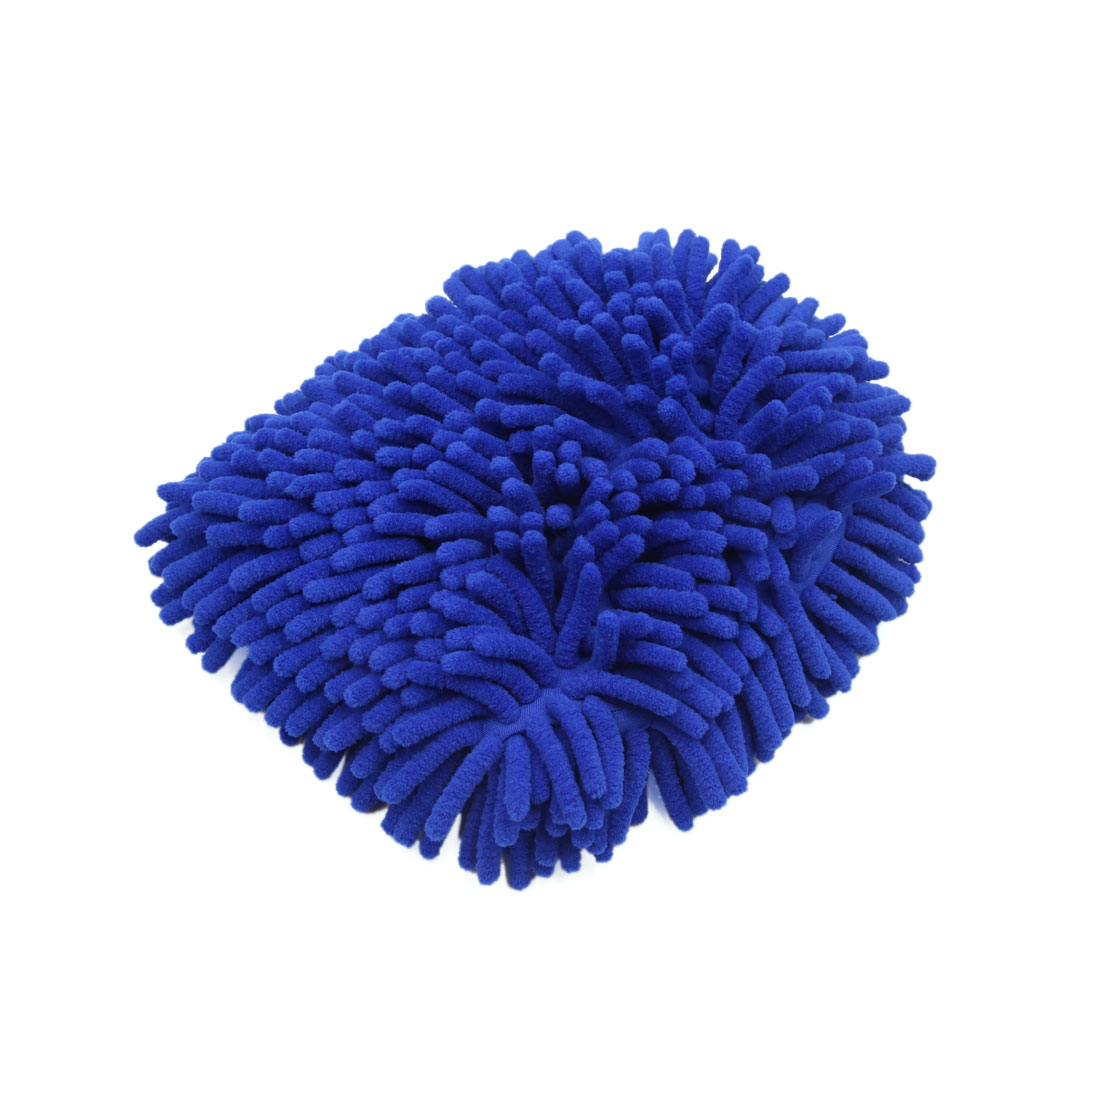 Dark Blue Double Side Microfiber Chenille Wash Mitt Cleaning Glove for Auto Car